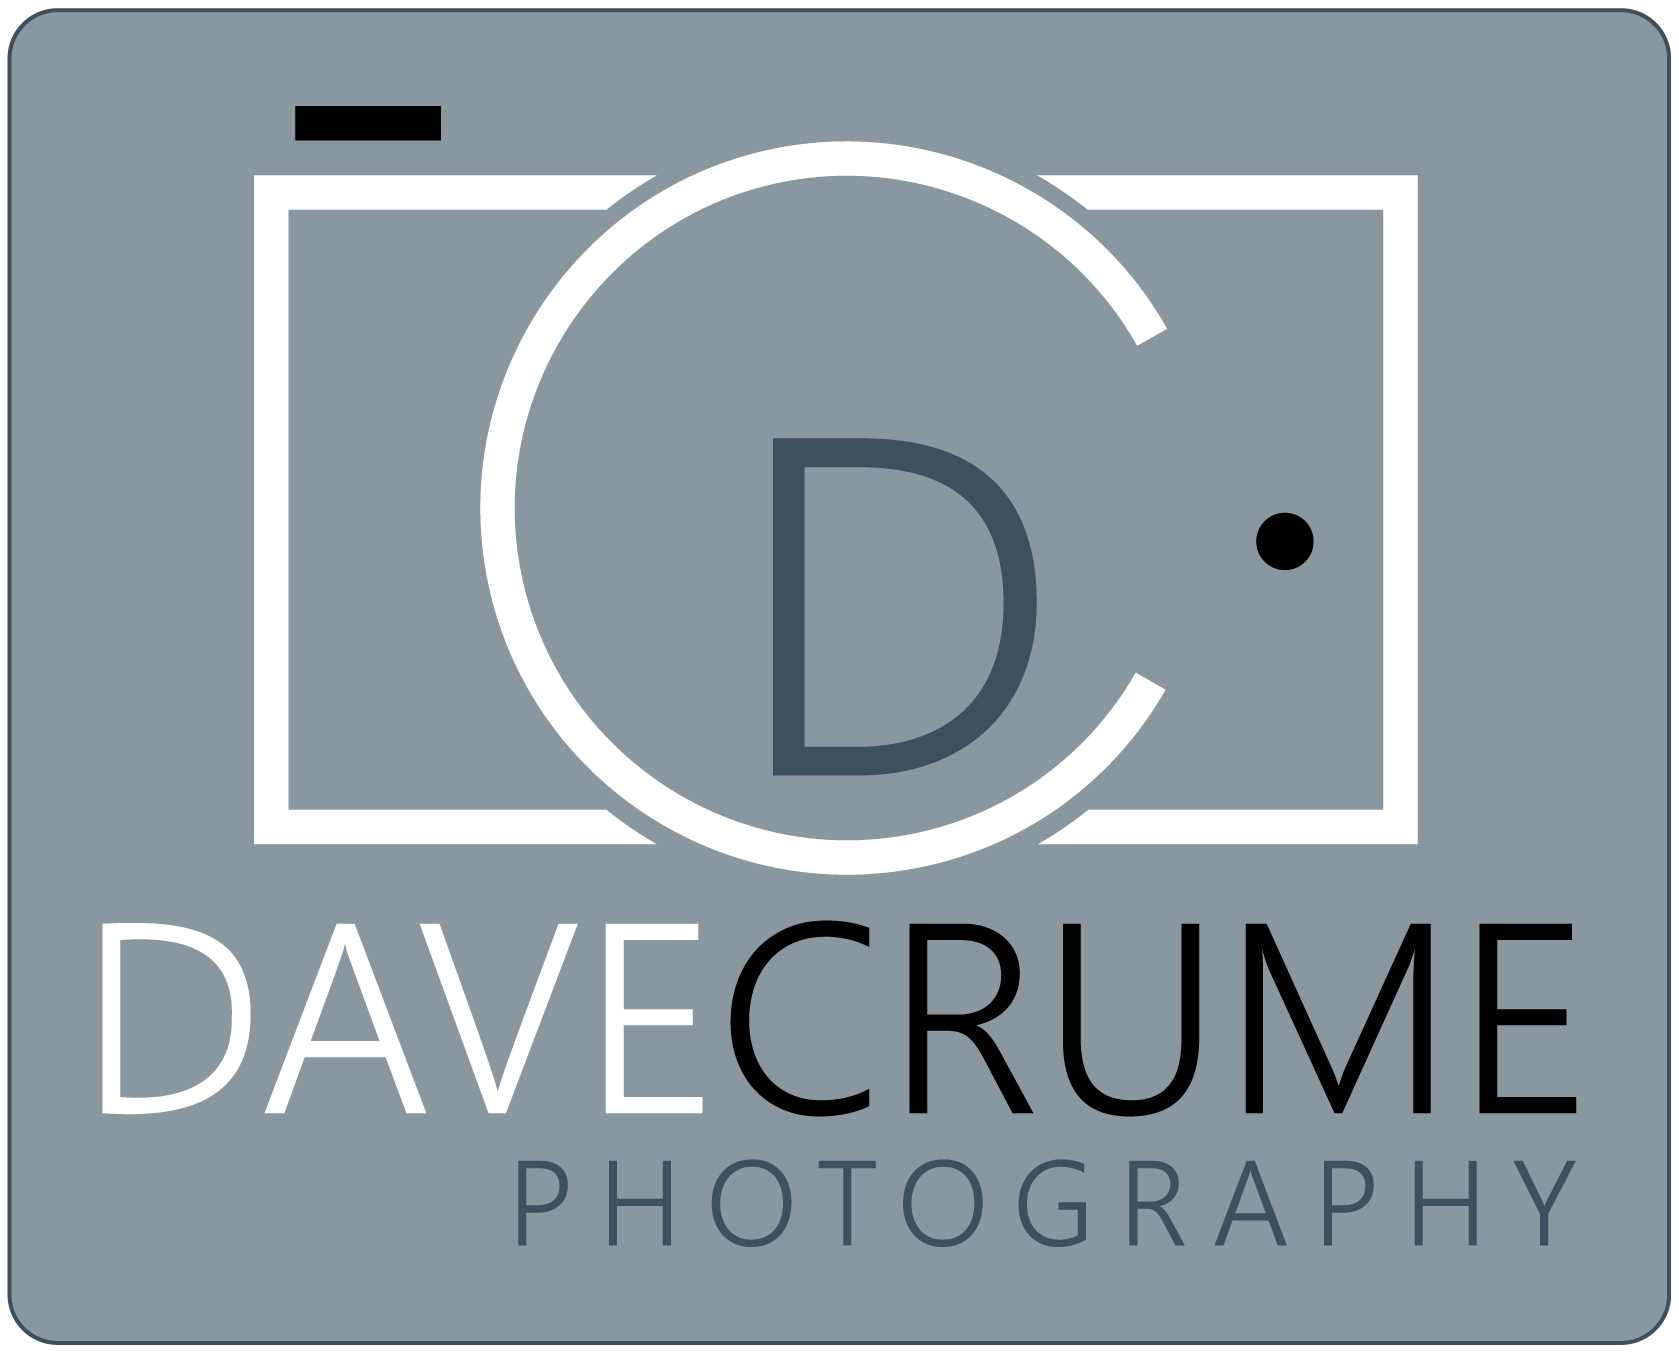 Dave Crume Photography LLC floor plan in Gig Harbor Olympia Puyallup Seattle Tacoma